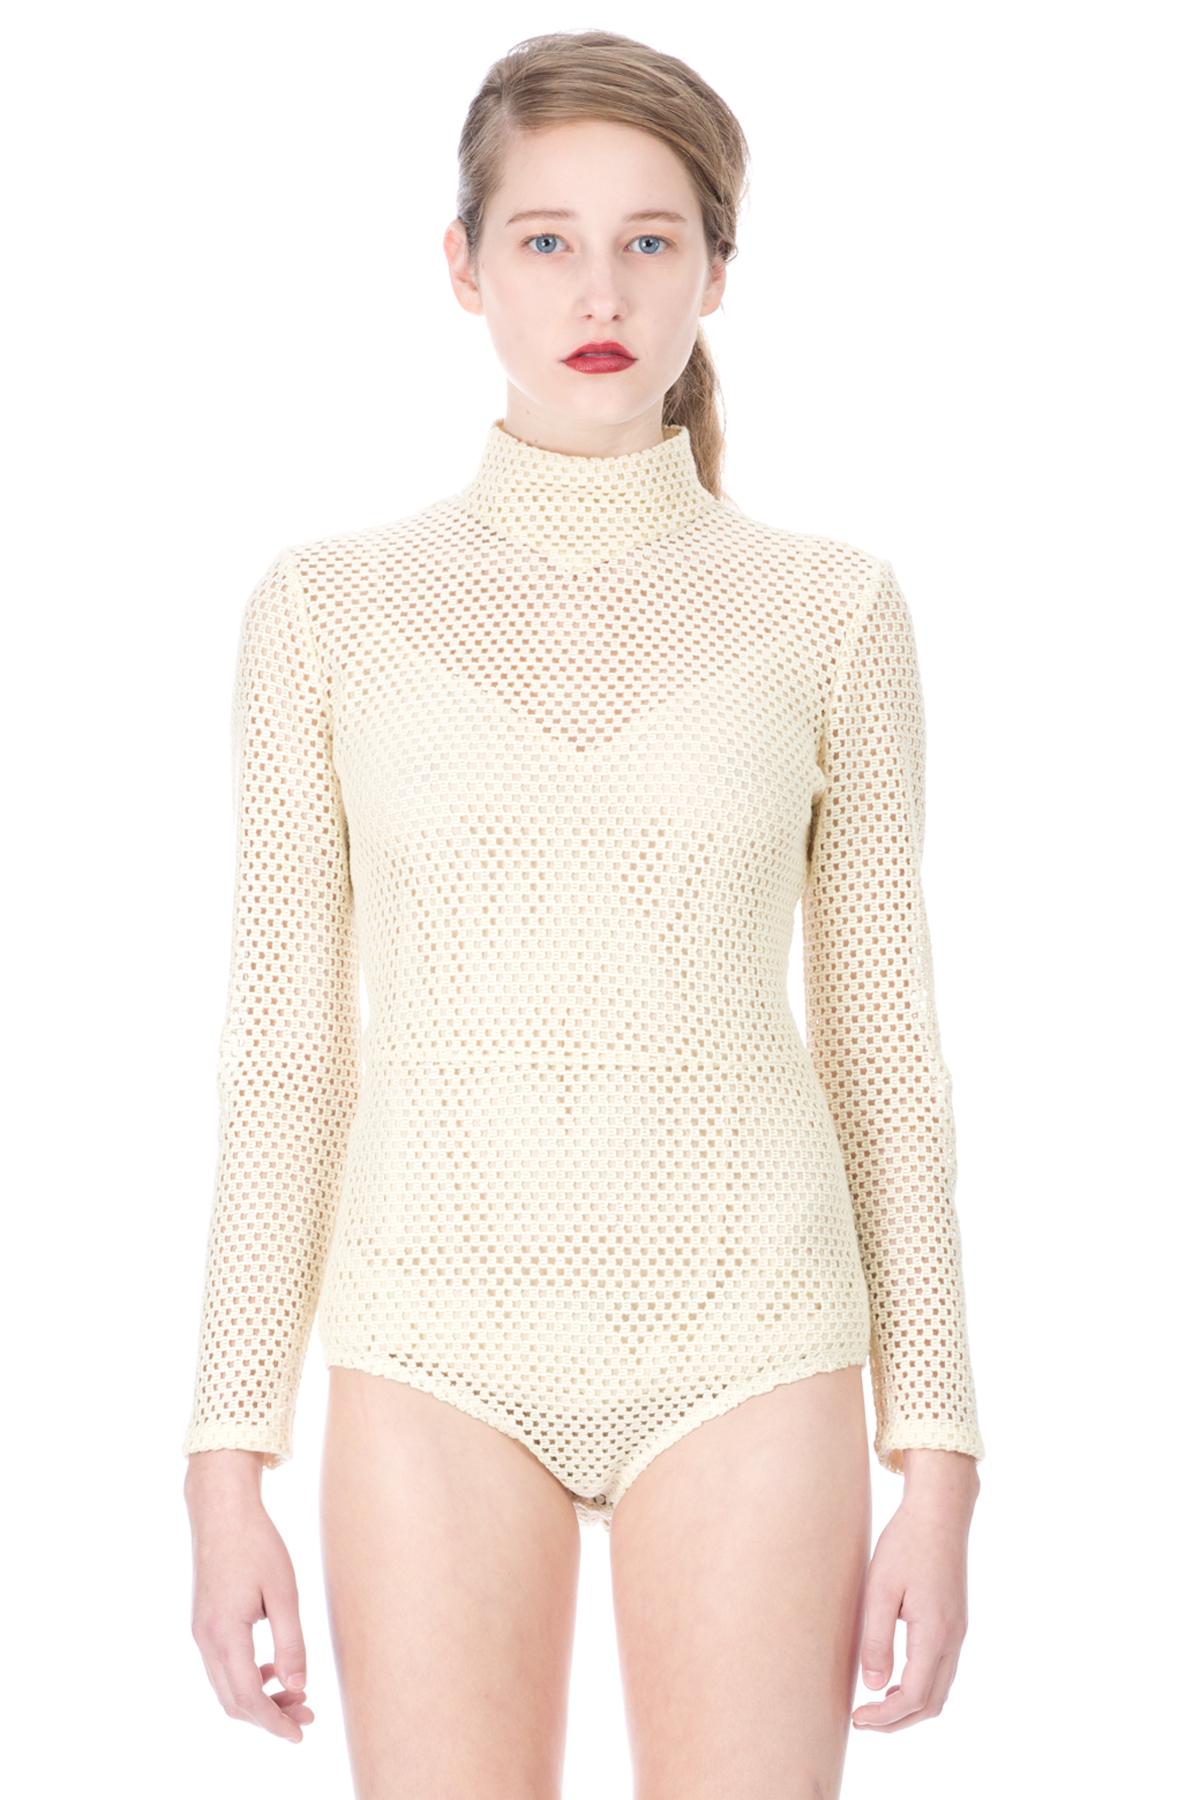 VERONIQUE LEROY MESH HIGH NECK LONG-SLEEVE BODYSUIT - WOMEN - VERONIQUE LEROY - OPENING CEREMONY